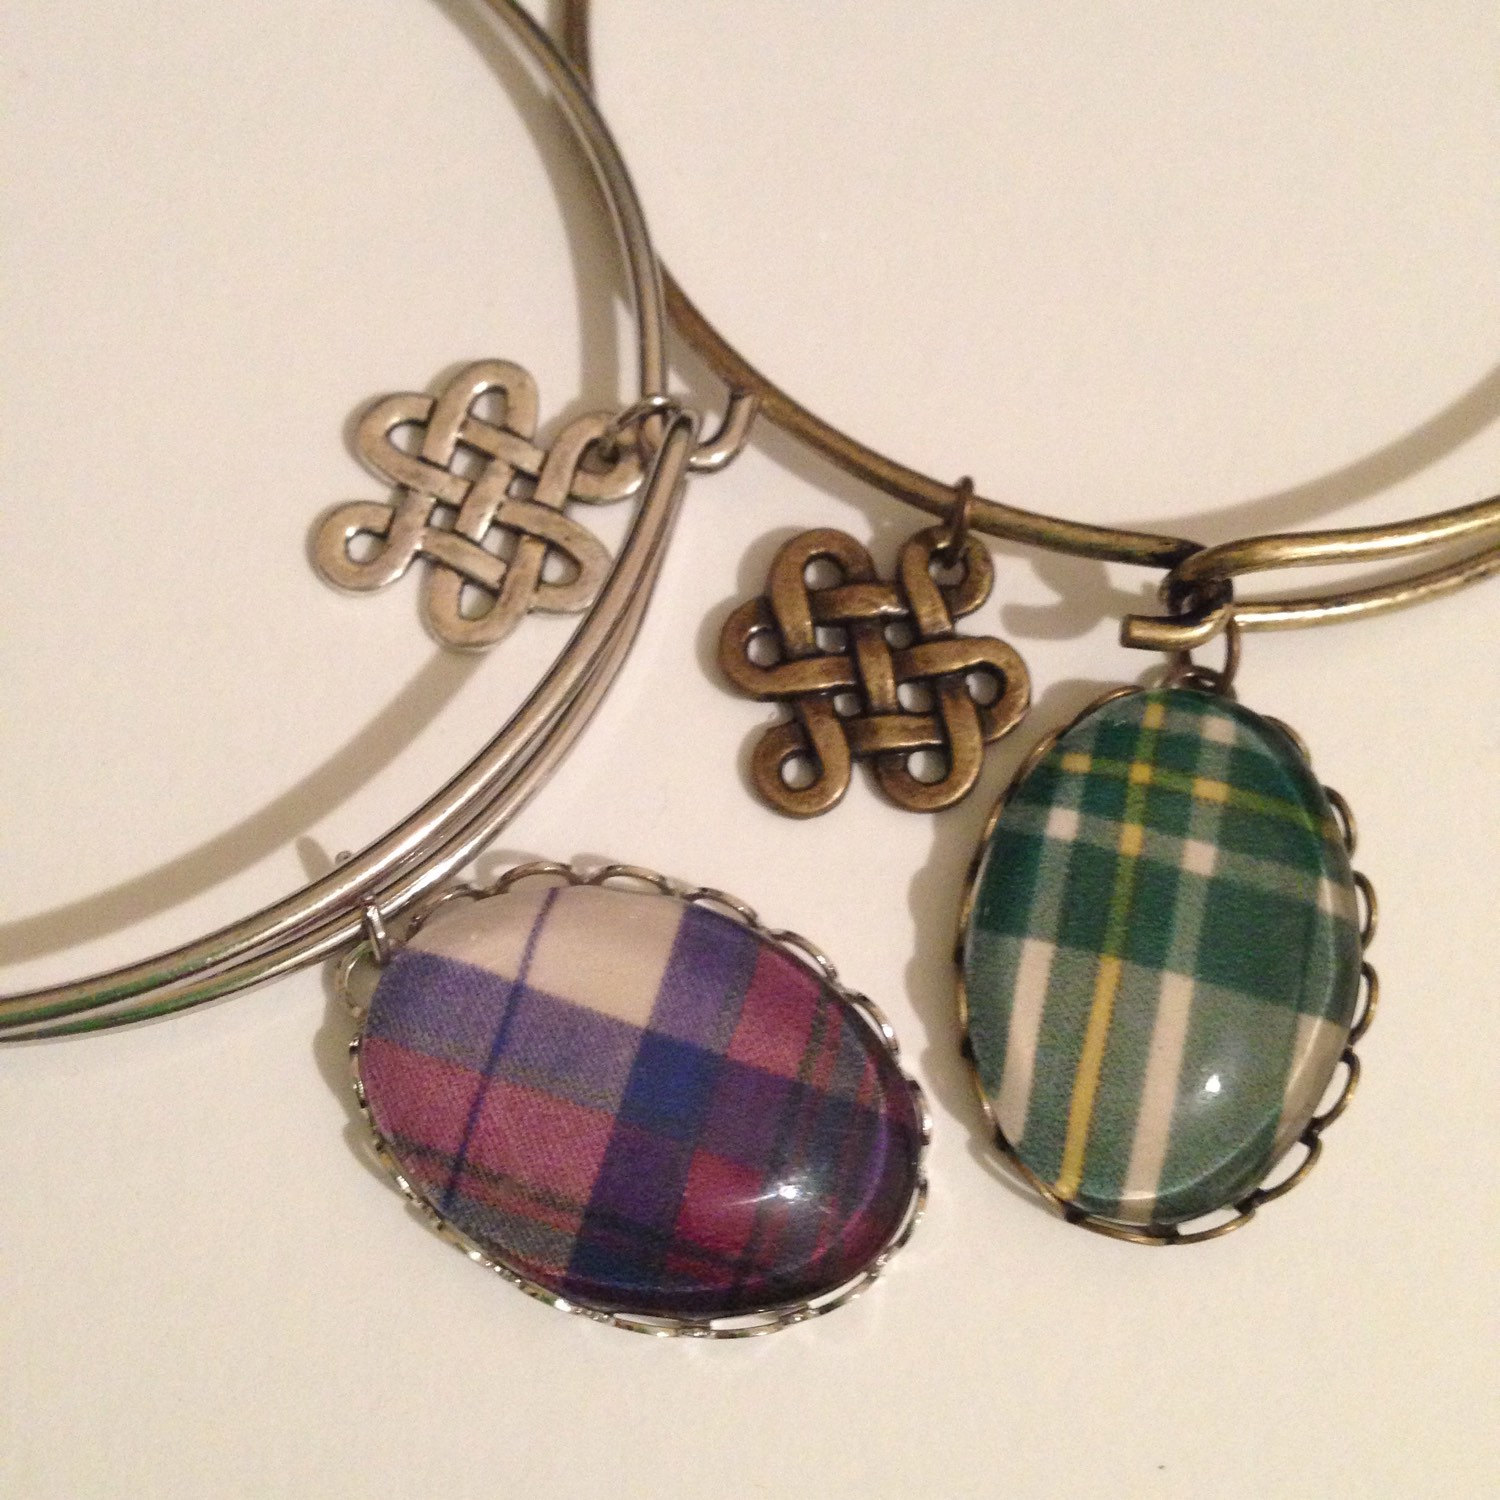 custom tartan bangle bracelet with loopy setting